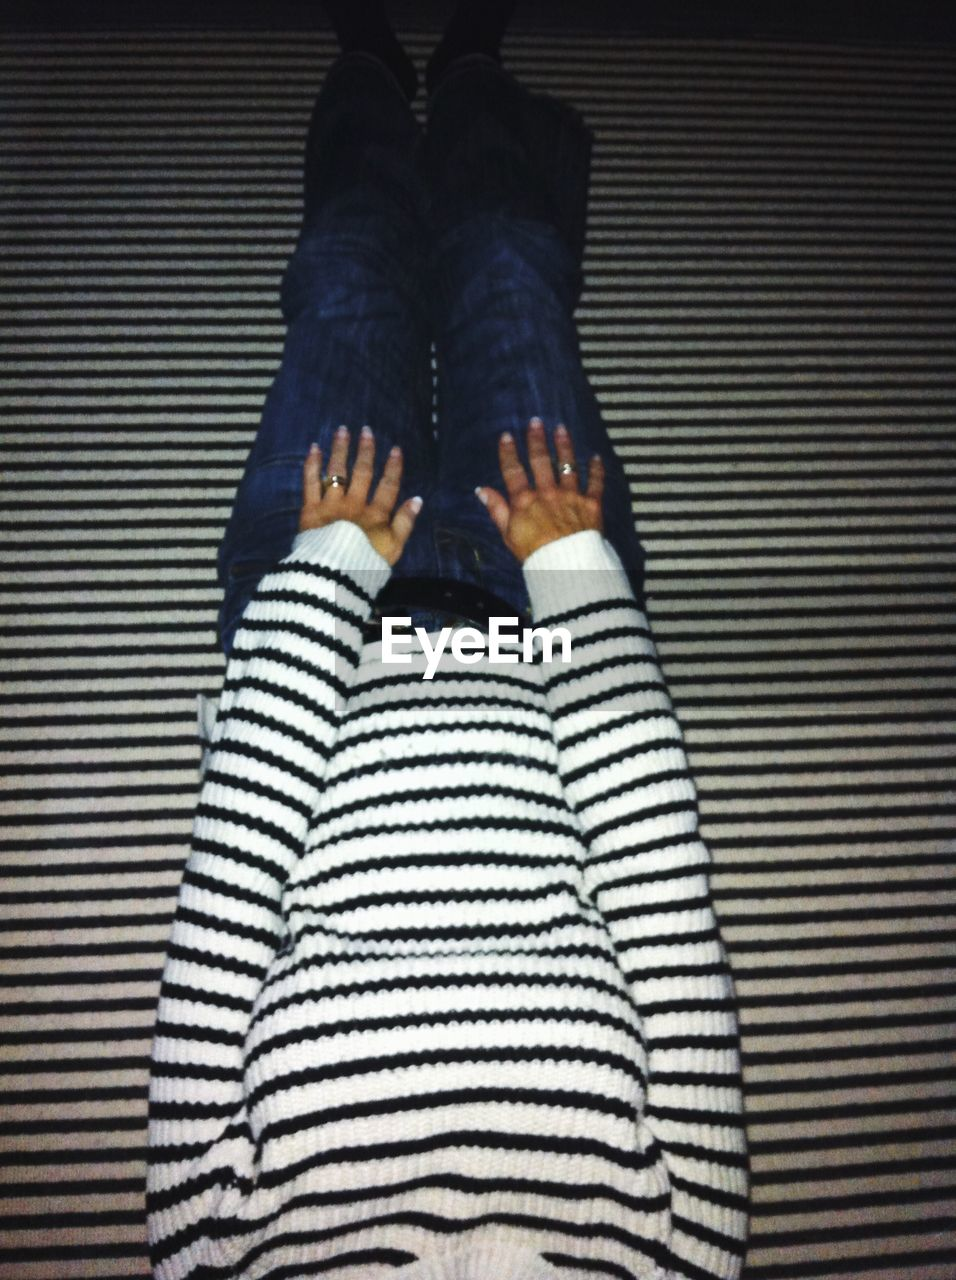 Midsection of woman relaxing on striped floor